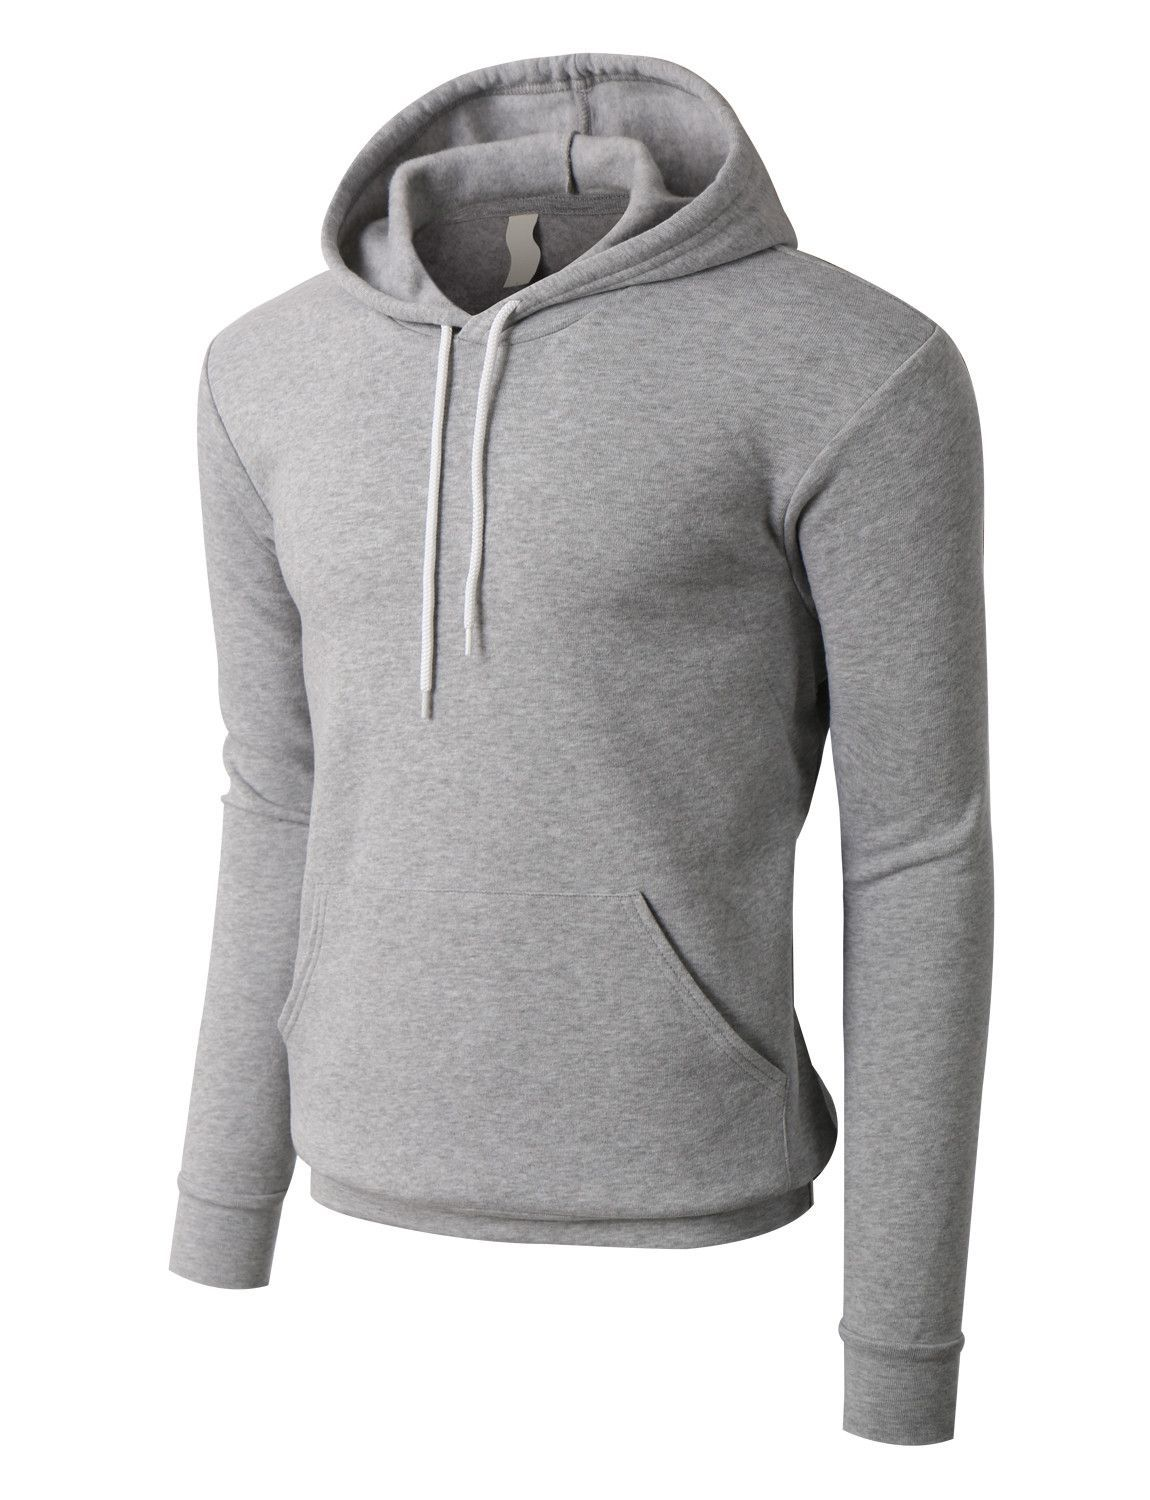 PREMIUM Mens Slim Fit Soft Fleece Pullover Hoodie Sweatshirt ...